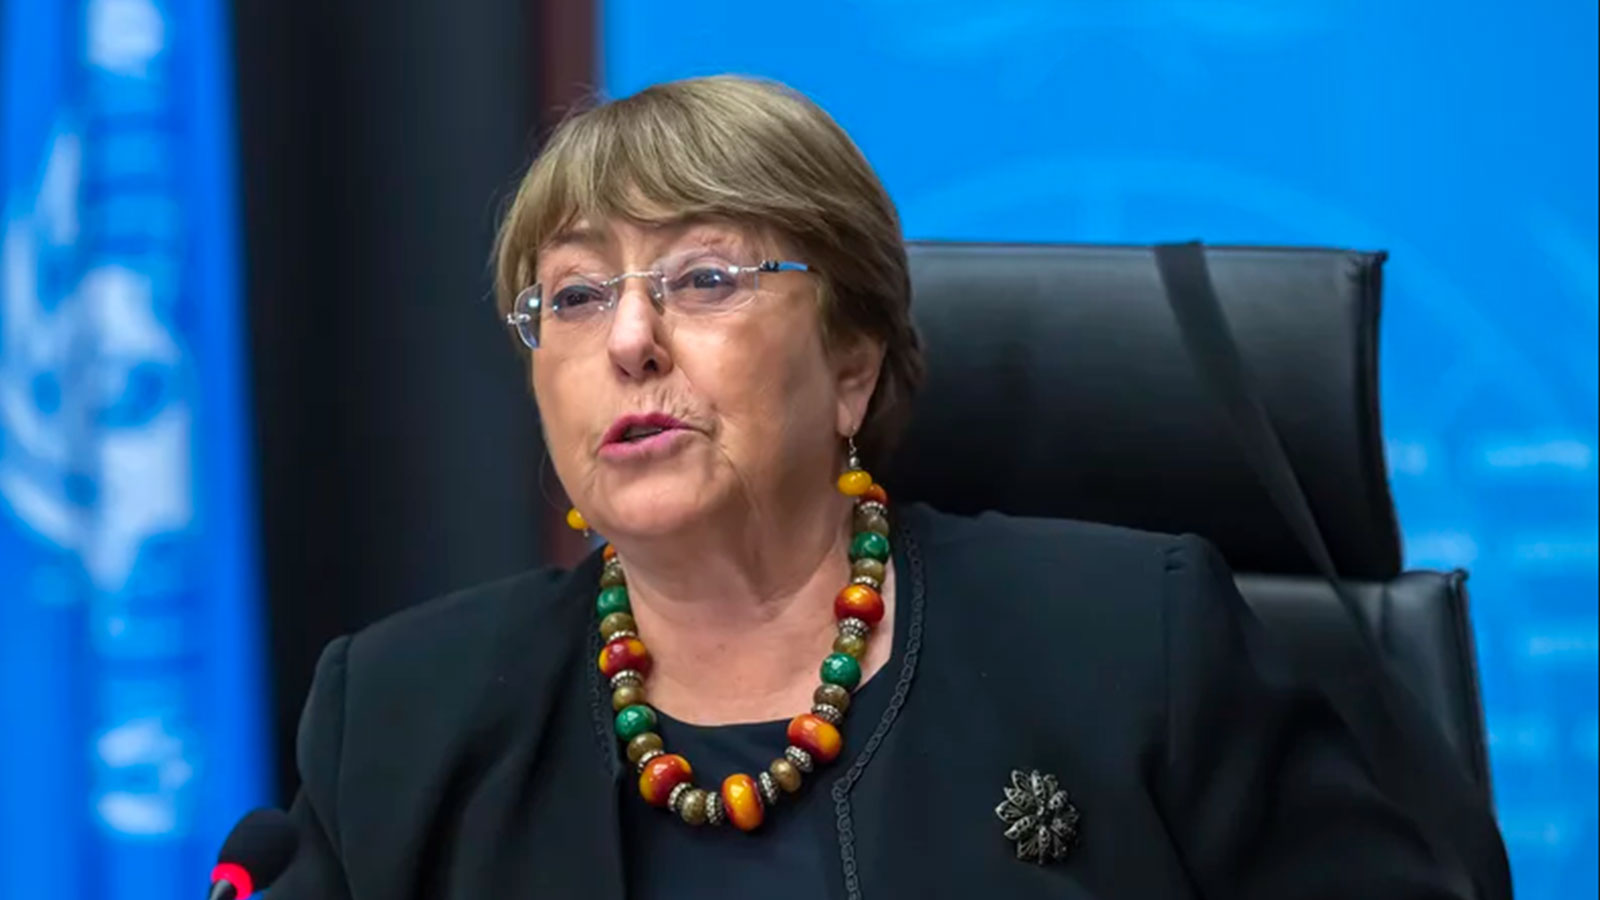 Michelle Bachelet, U.N. High Commissioner for Human Rights